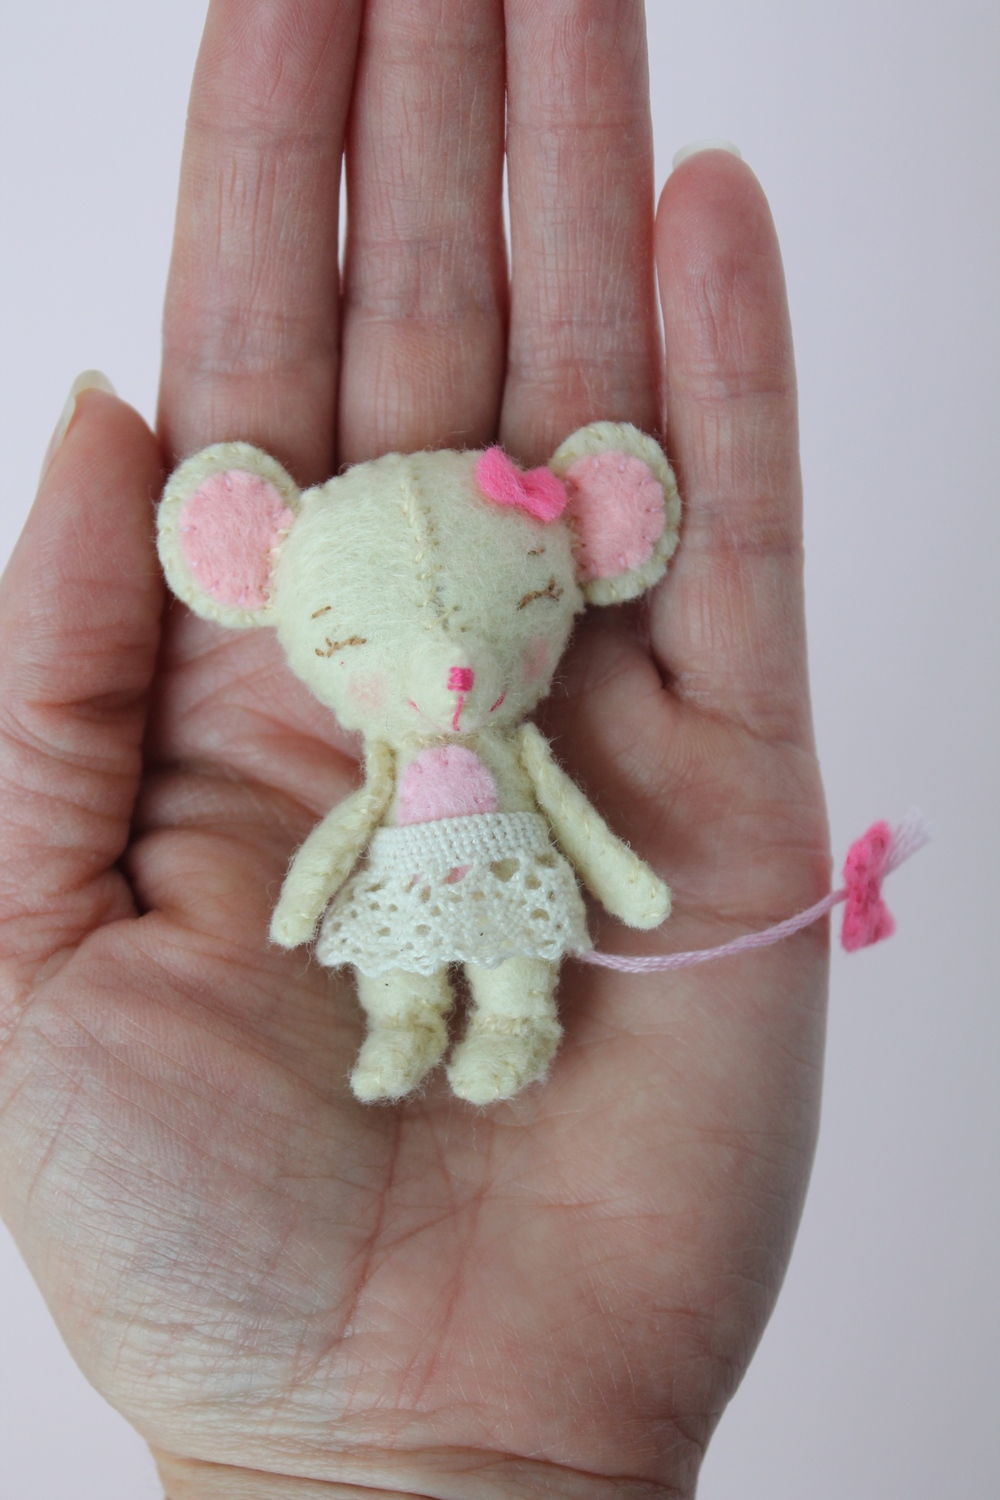 Tiny Felt mouse. Pattern from Gingermelon ETSY shop.